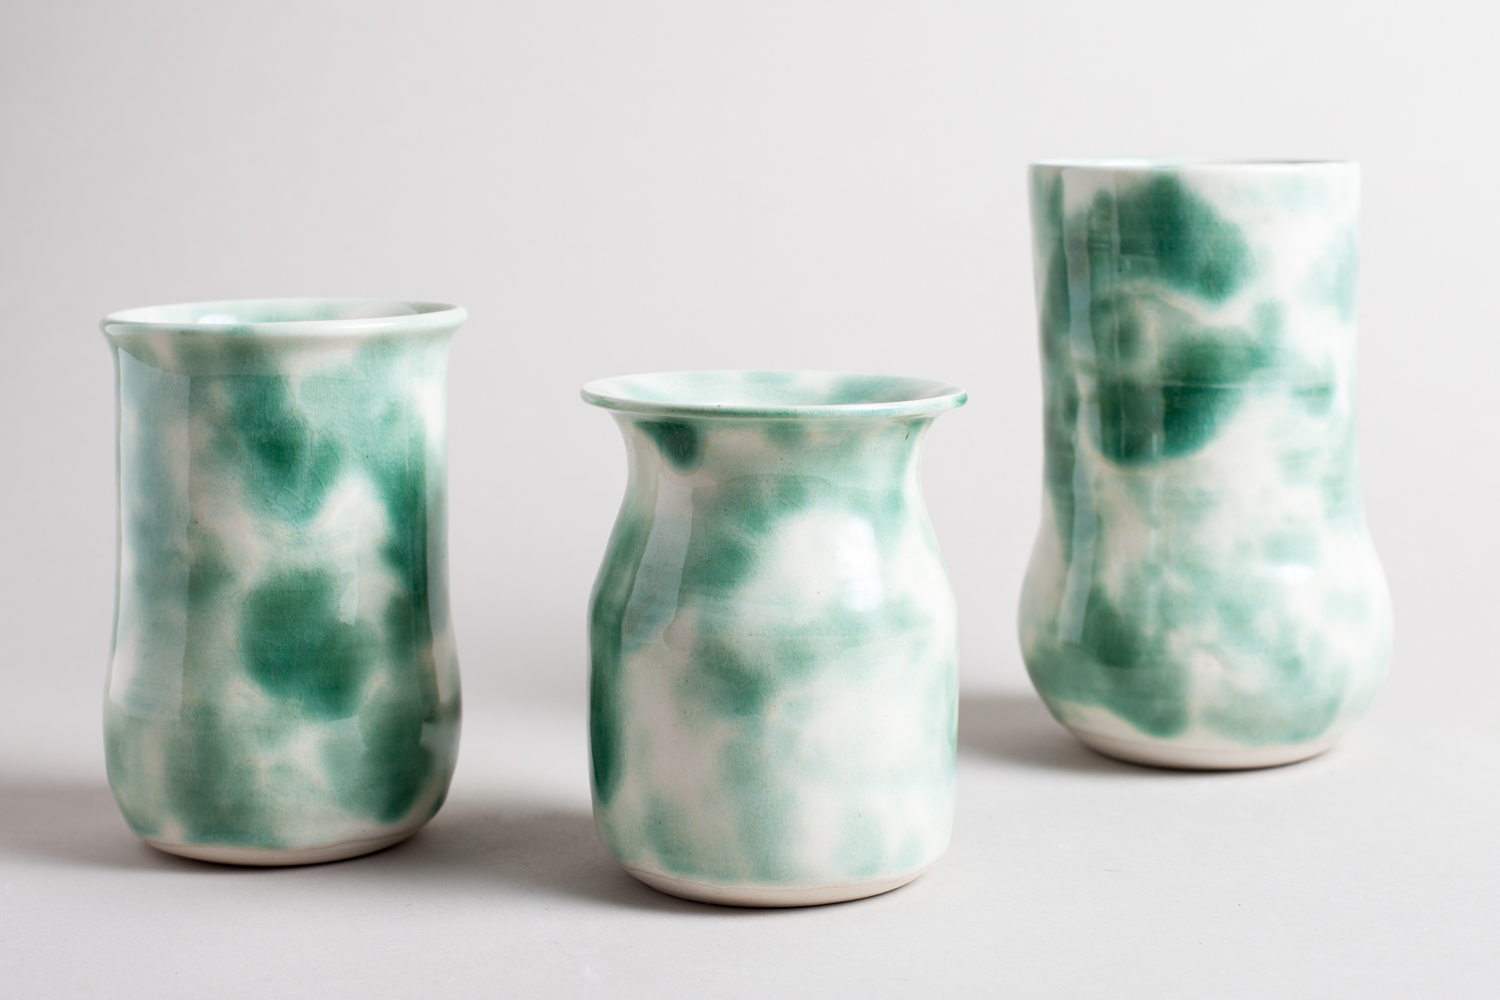 ankceramics-march-2016-alyssa-robb-122.jpg